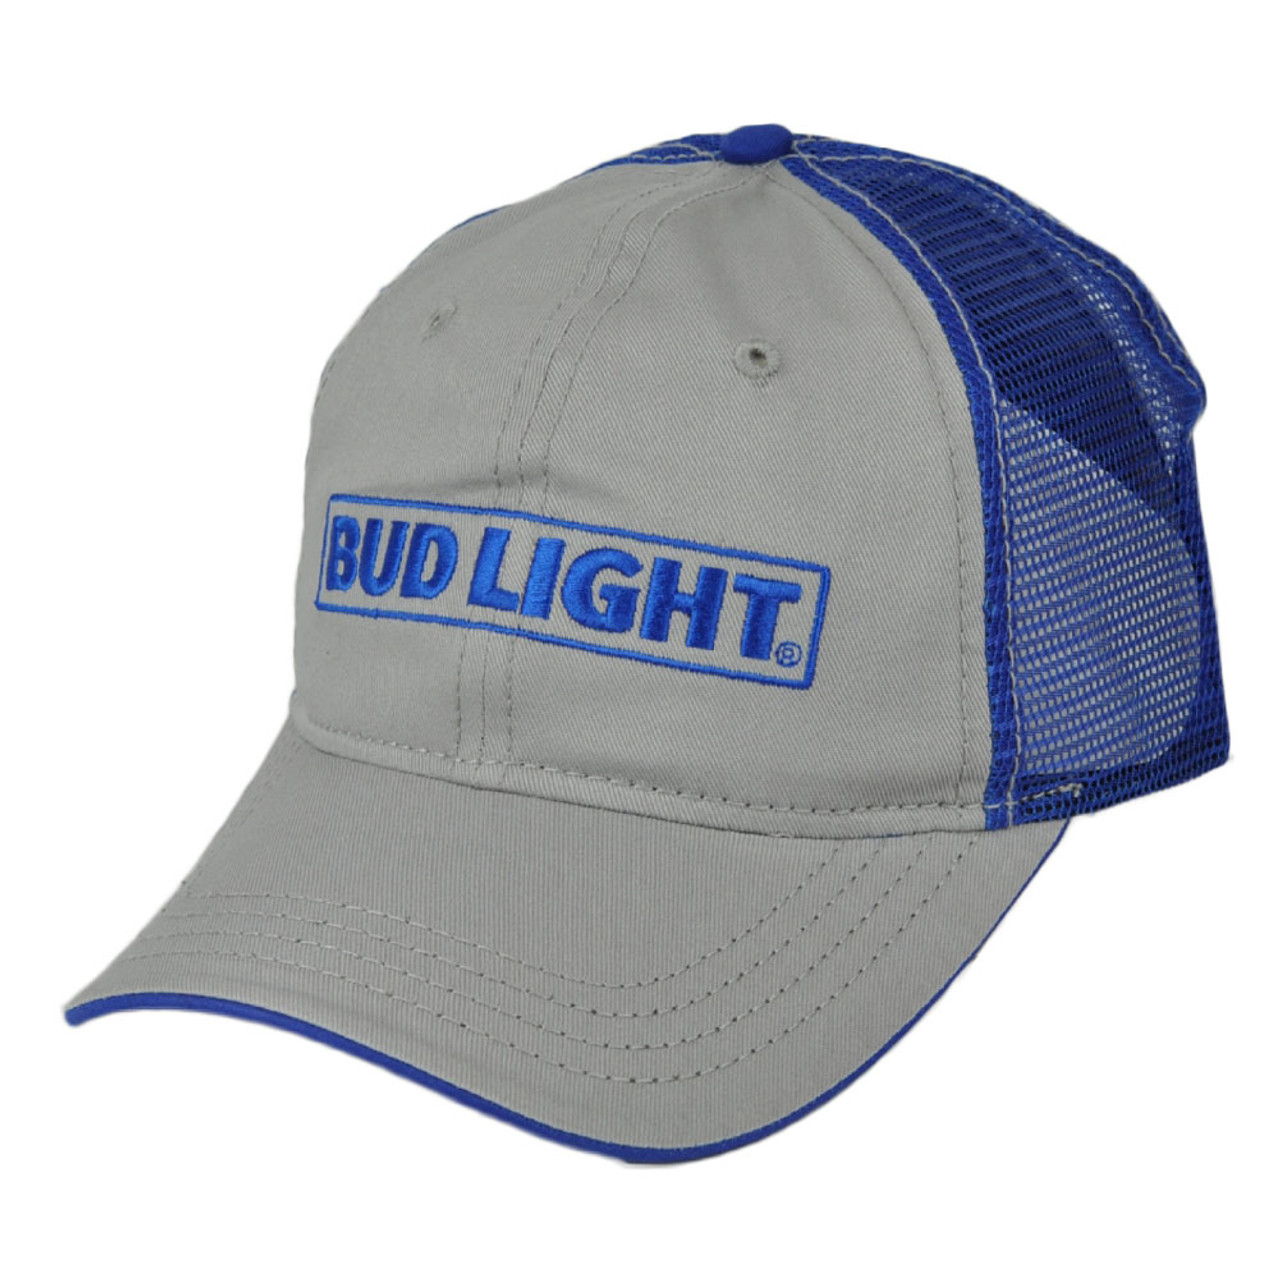 5460ef0aa Bud Light Gray Blue Mesh Snapback Two Tone Beer Relaxed Brand Hat Cap  Adjustable